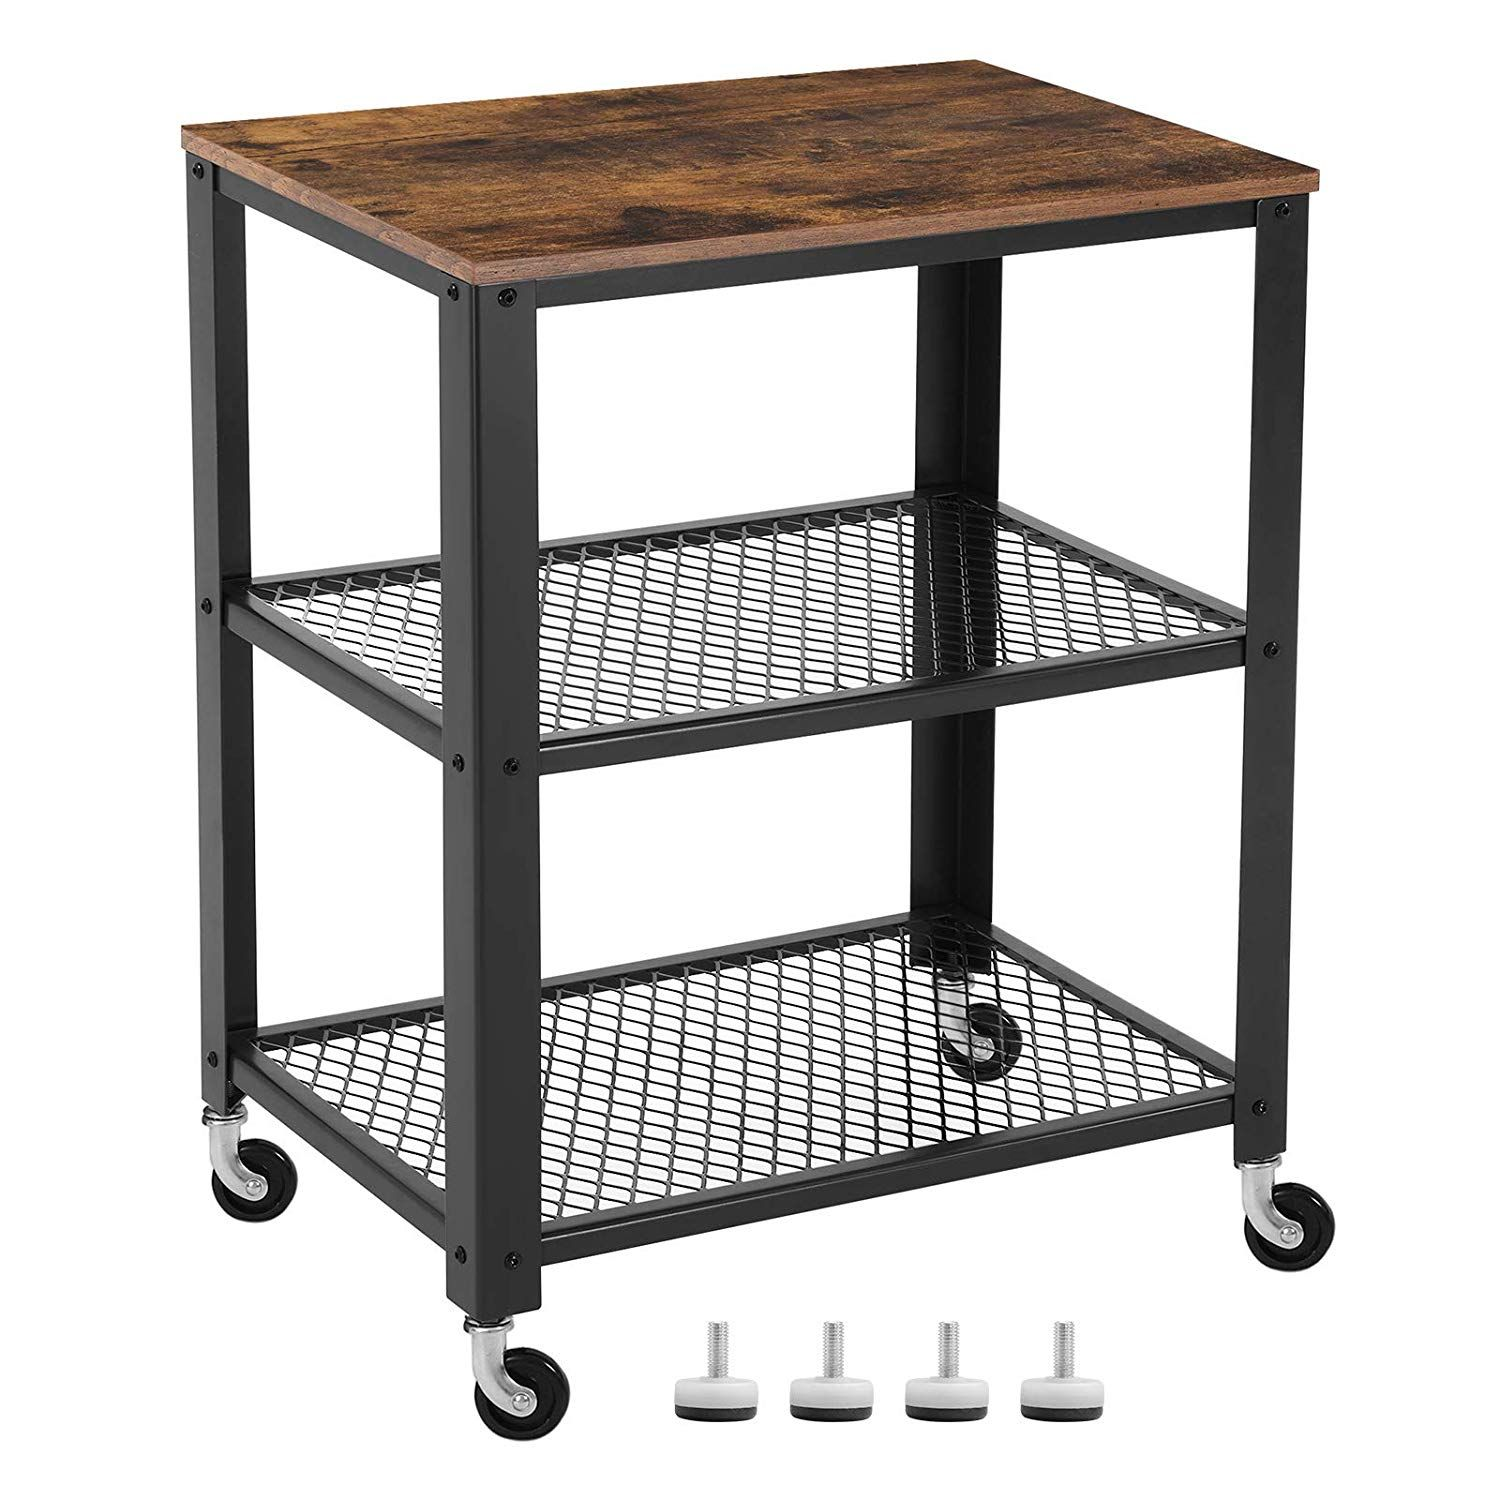 Top 10 Best Bar Carts In 2020 Rolling Kitchen Cart Rustic Kitchen Kitchen Carts On Wheels